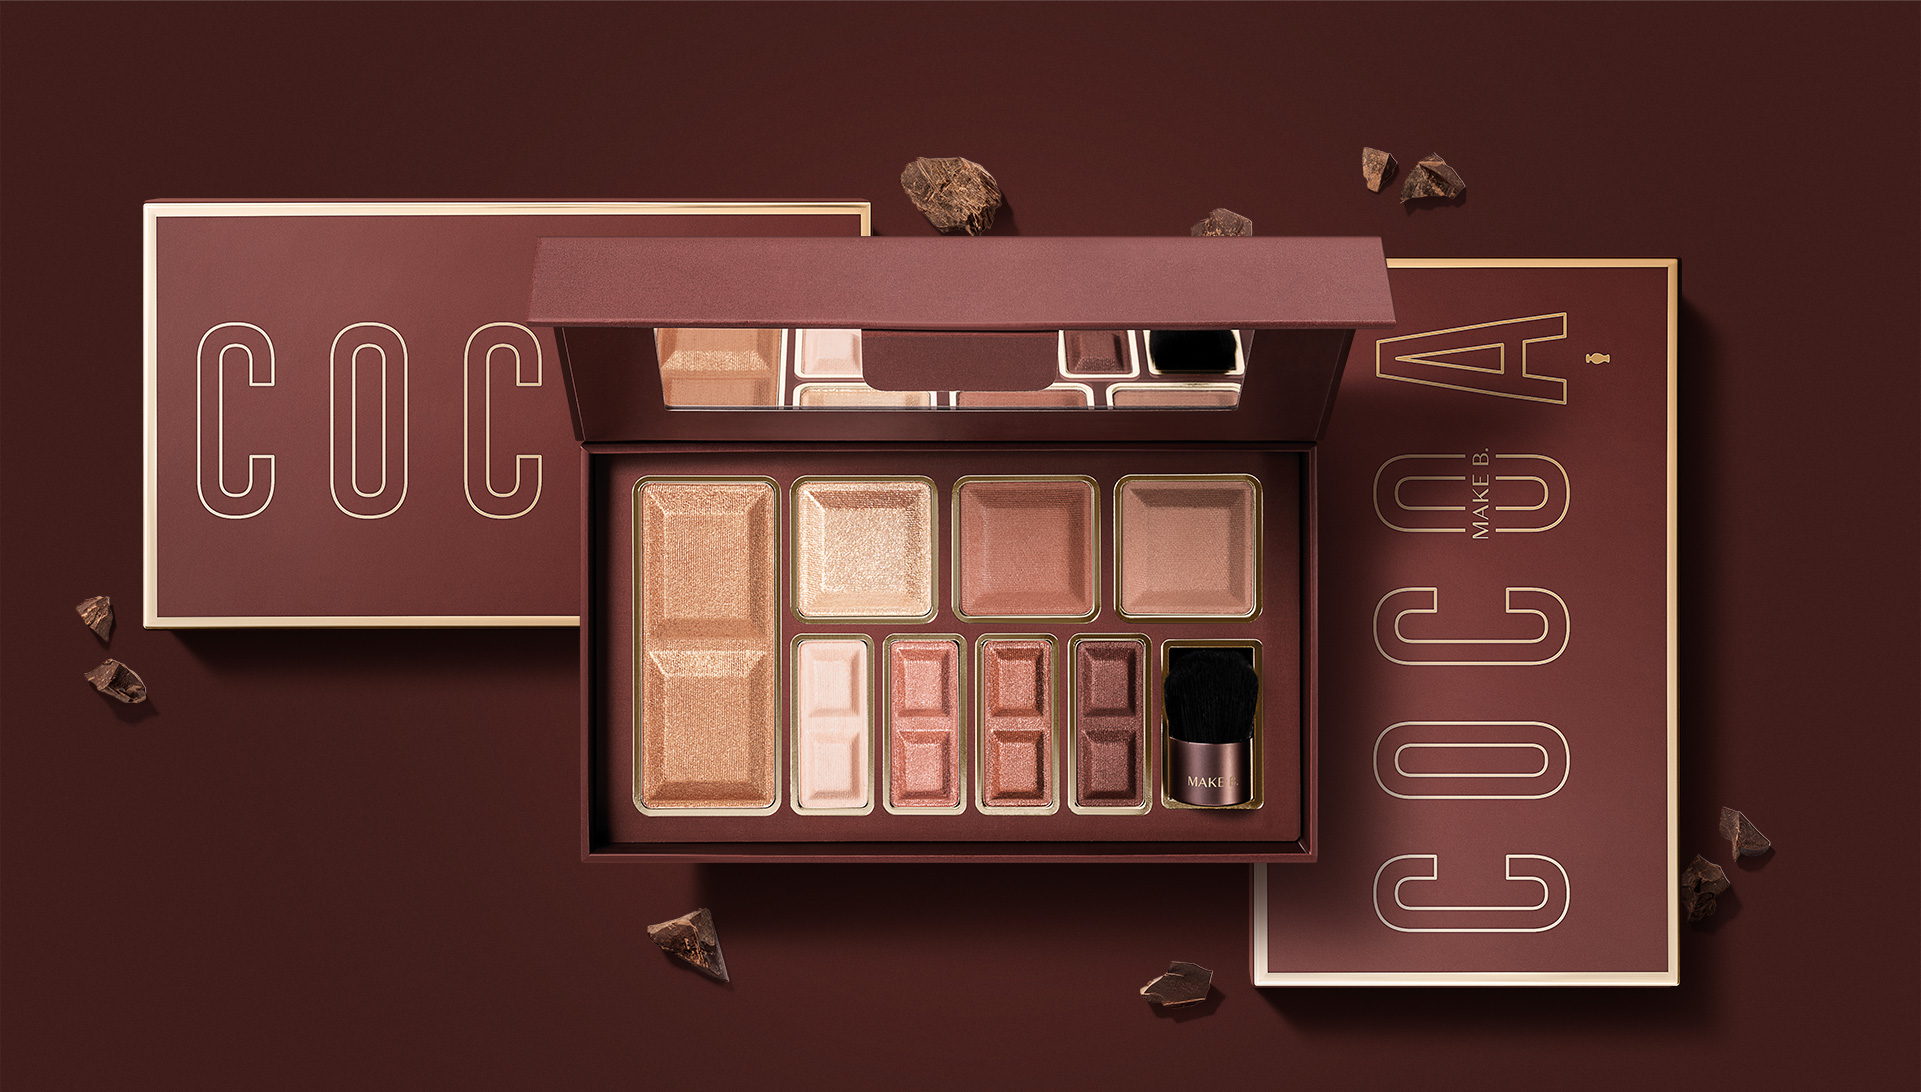 Make B. by O Boticário Makeup and Chocolate Packaging Design by MAD Creative